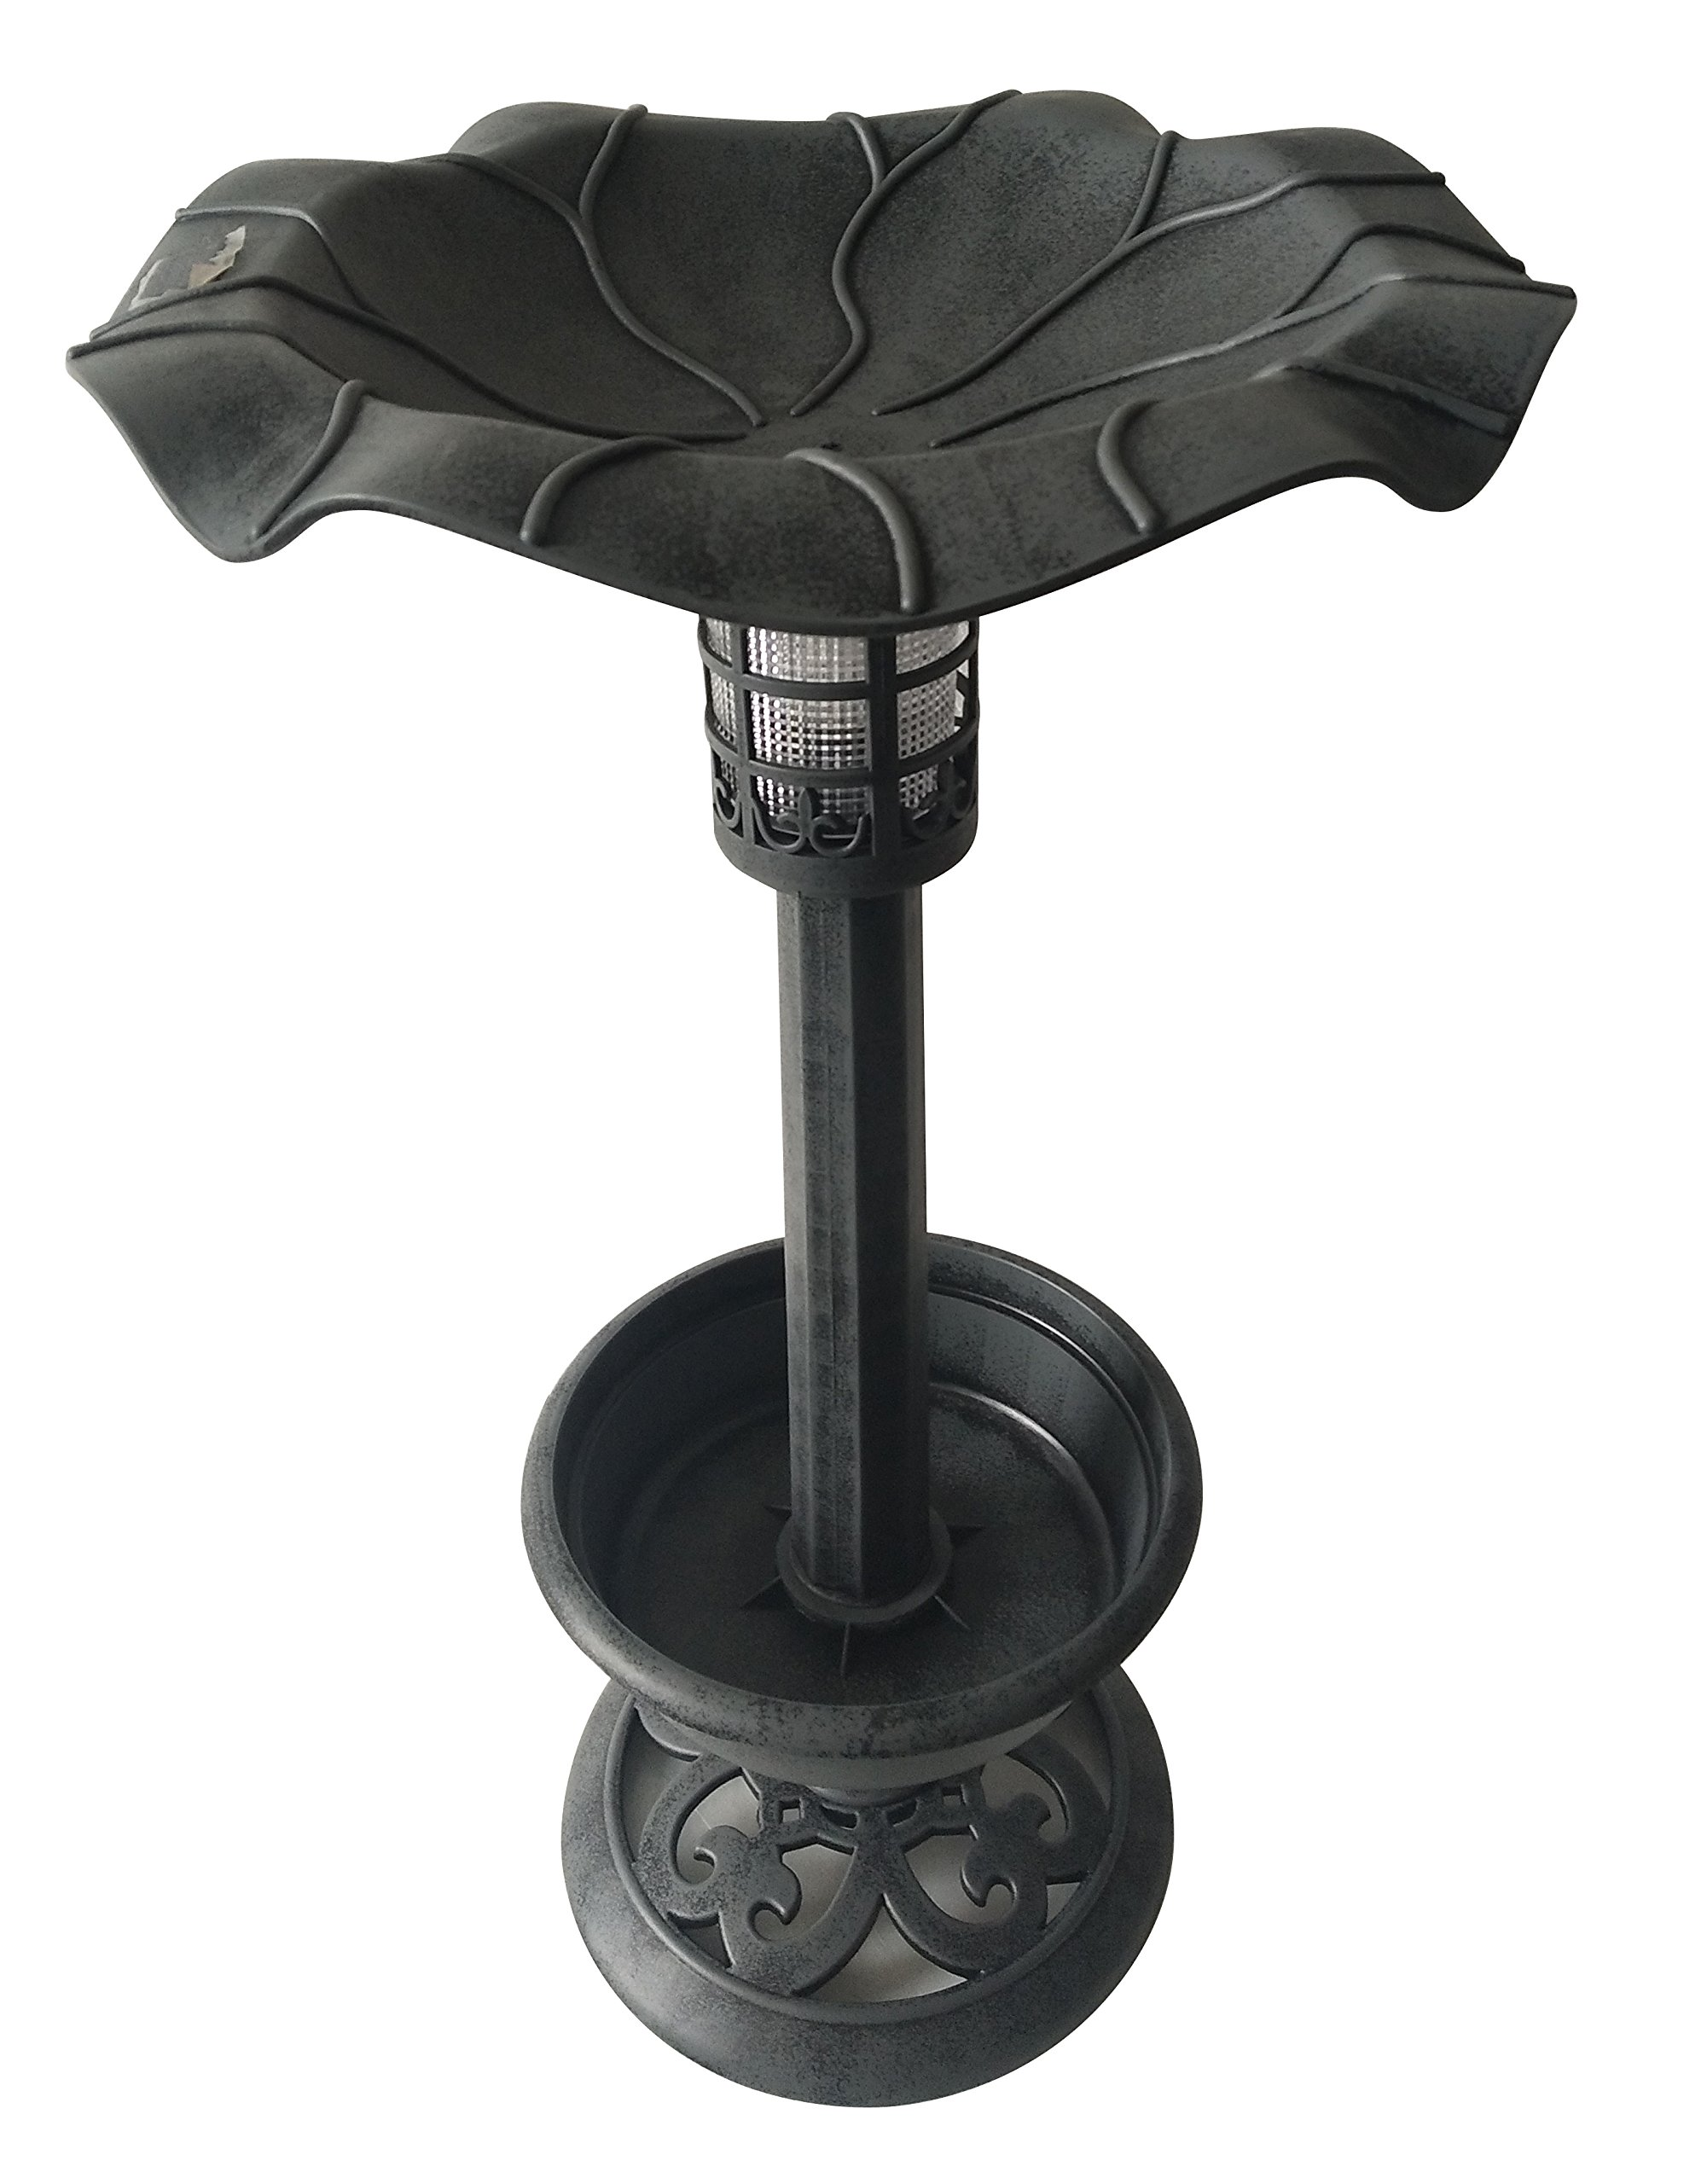 Backyard Expressions 914928 Bird Bath with Solar Light, Pewter by Backyard Expressions